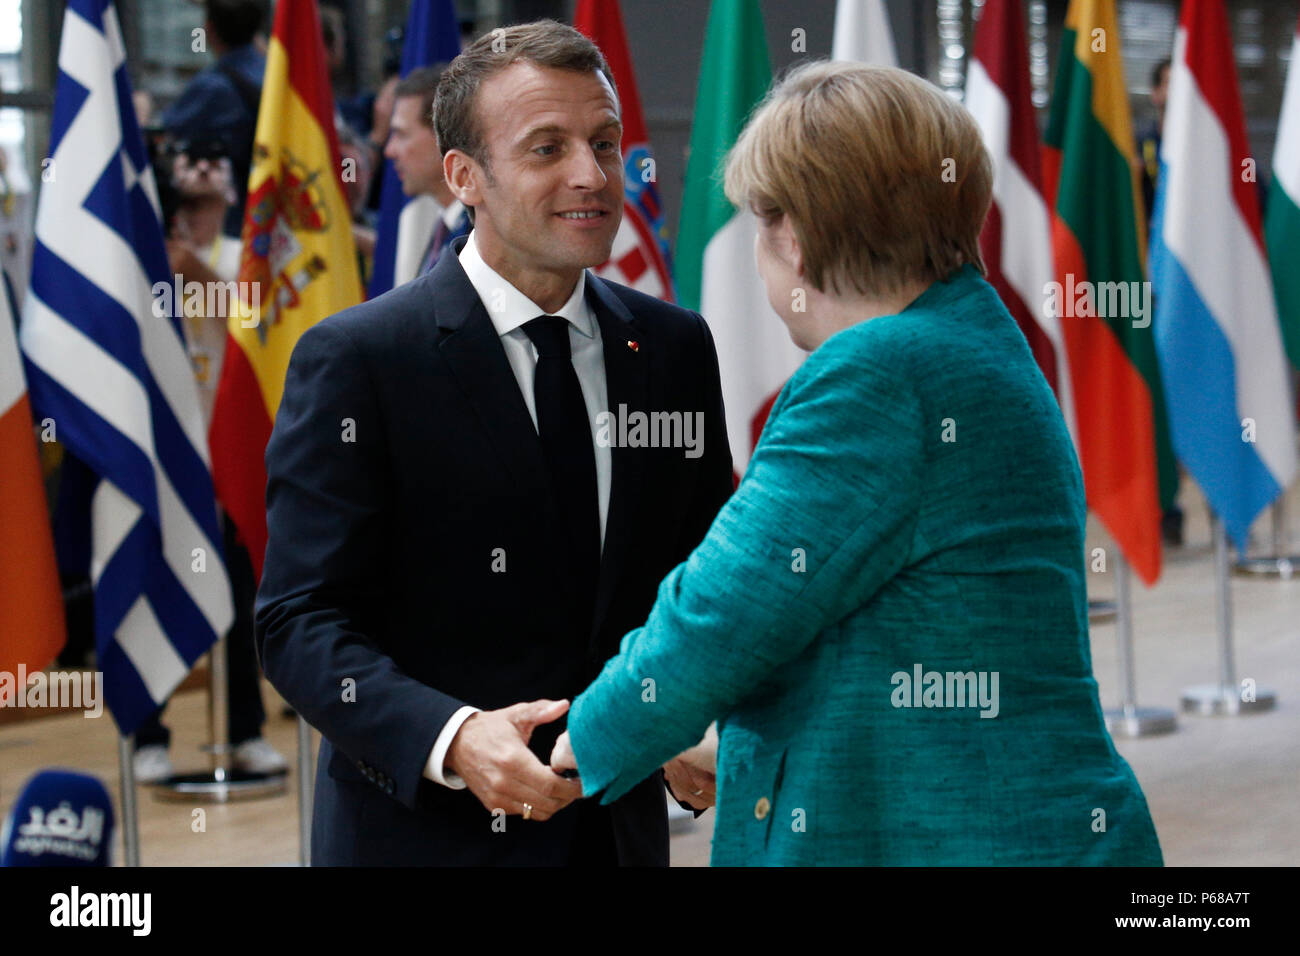 Brussels belgium on jun 28 2018rman chancellor angela merkel german chancellor angela merkel and french president emmanuel macron greet each other as they arrive at an european union leaders summit m4hsunfo